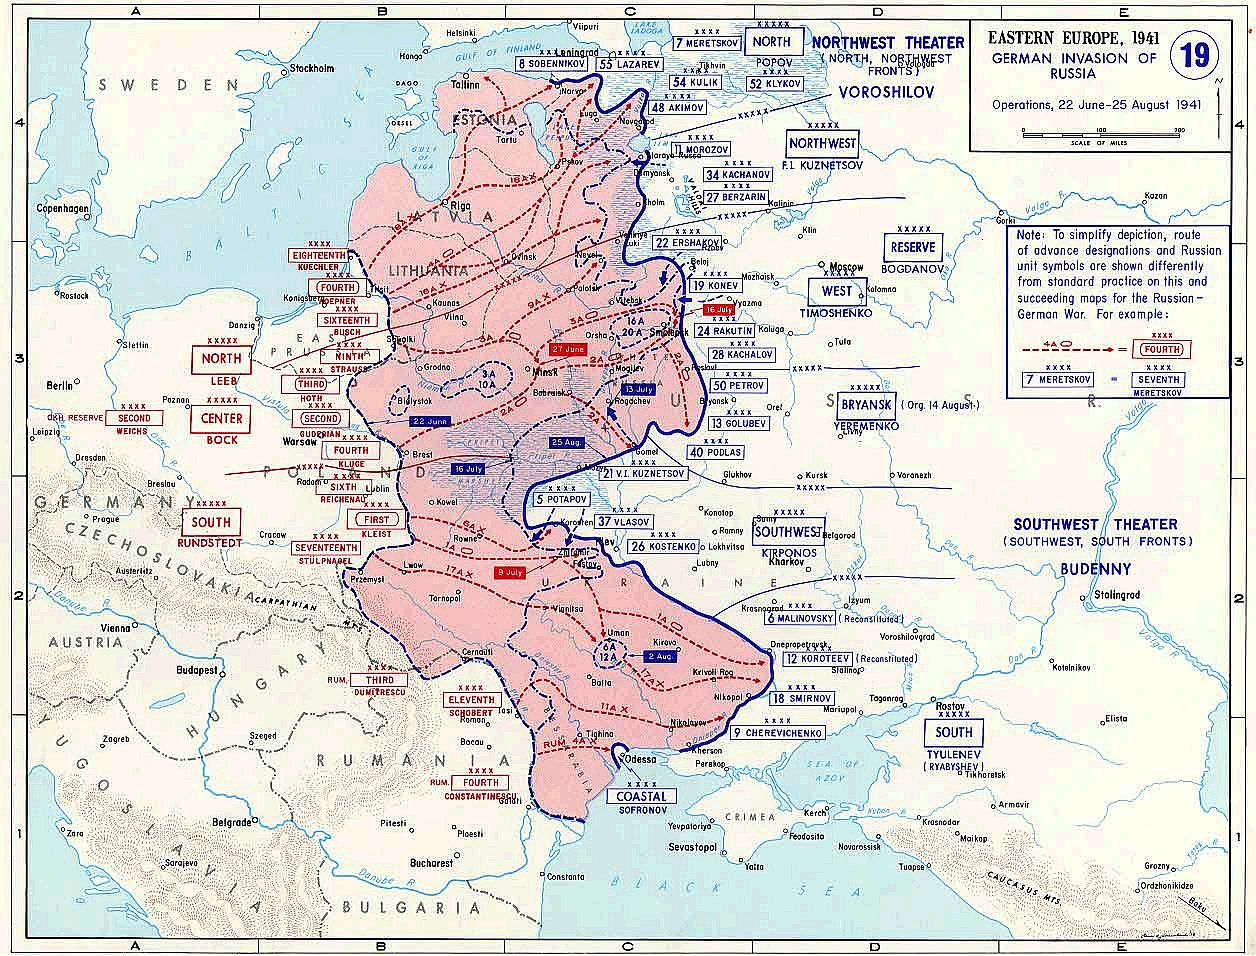 an overview of the operation barbarossa during the wwii invasion of russia Attack on russia in calling off operation sea  the invasion plan for russia was named operation barbarossa  during the day airplanes continuously dropped.